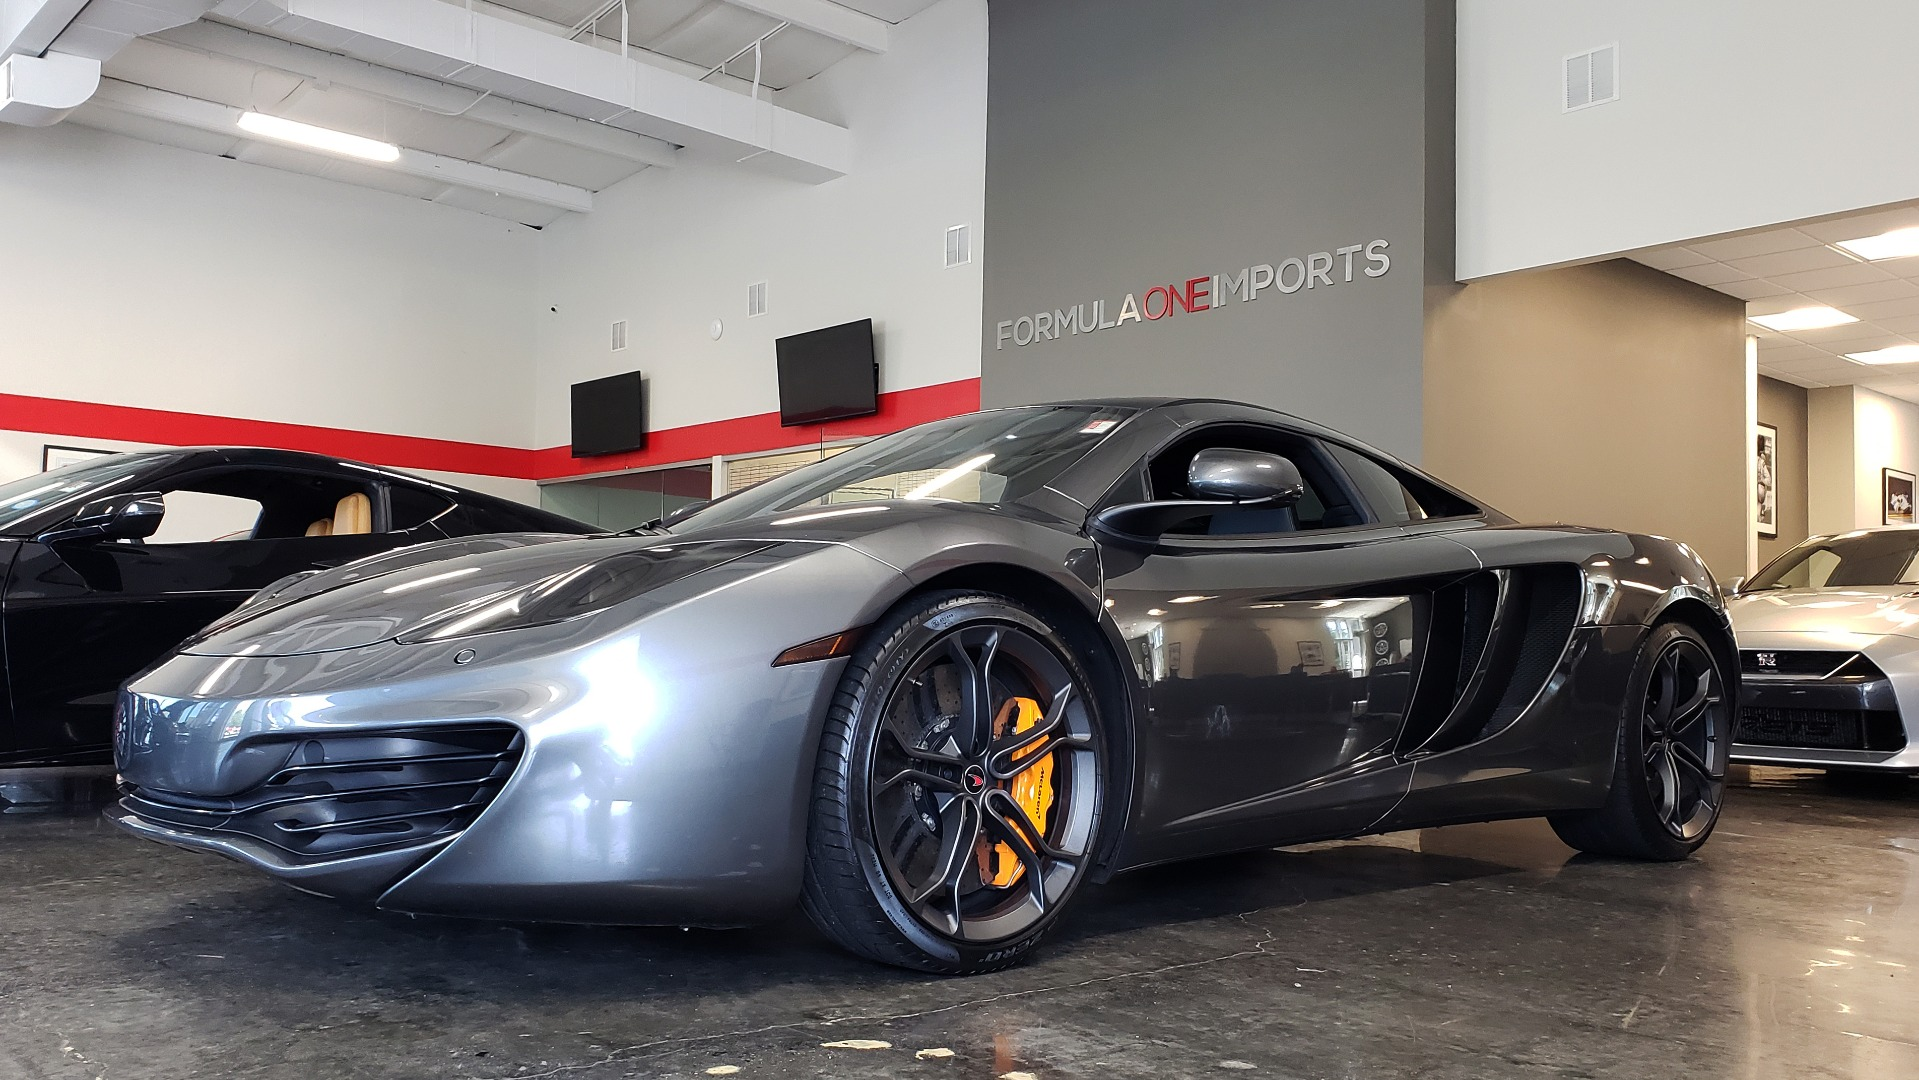 Used 2012 McLaren MP4-12C COUPE / 3.8 L V8 592HP / AUTO / NAV / CCB / LOW MILES for sale $97,999 at Formula Imports in Charlotte NC 28227 90